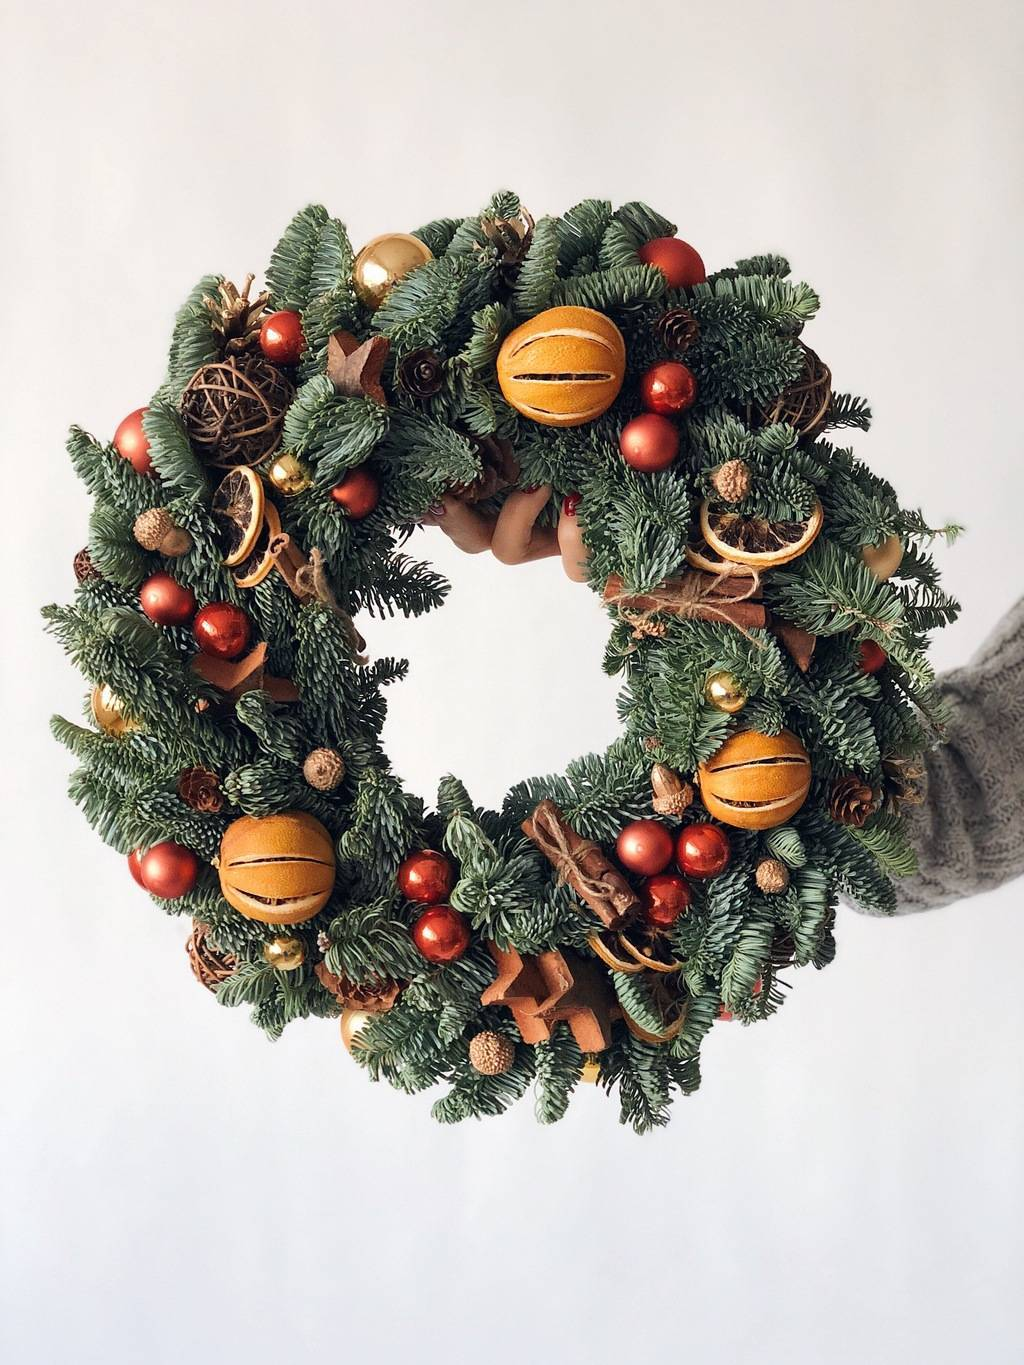 white background woman holding christmas wreath decorated with dried fruits